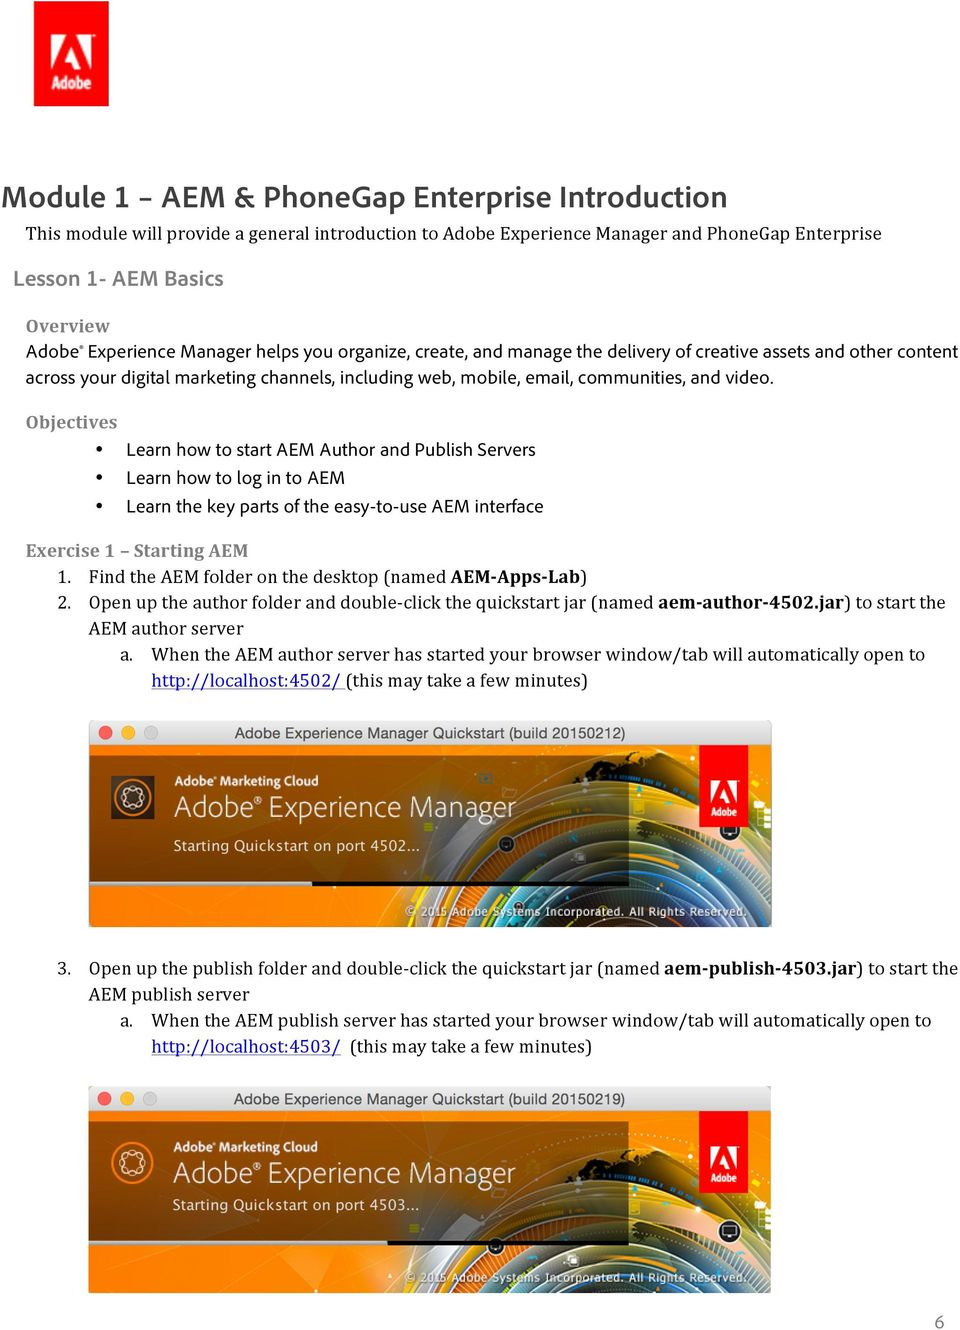 Objectives Learn how to start AEM Author and Publish Servers Learn how to log in to AEM Learn the key parts of the easy-to-use AEM interface Exercise 1 Starting AEM 1.